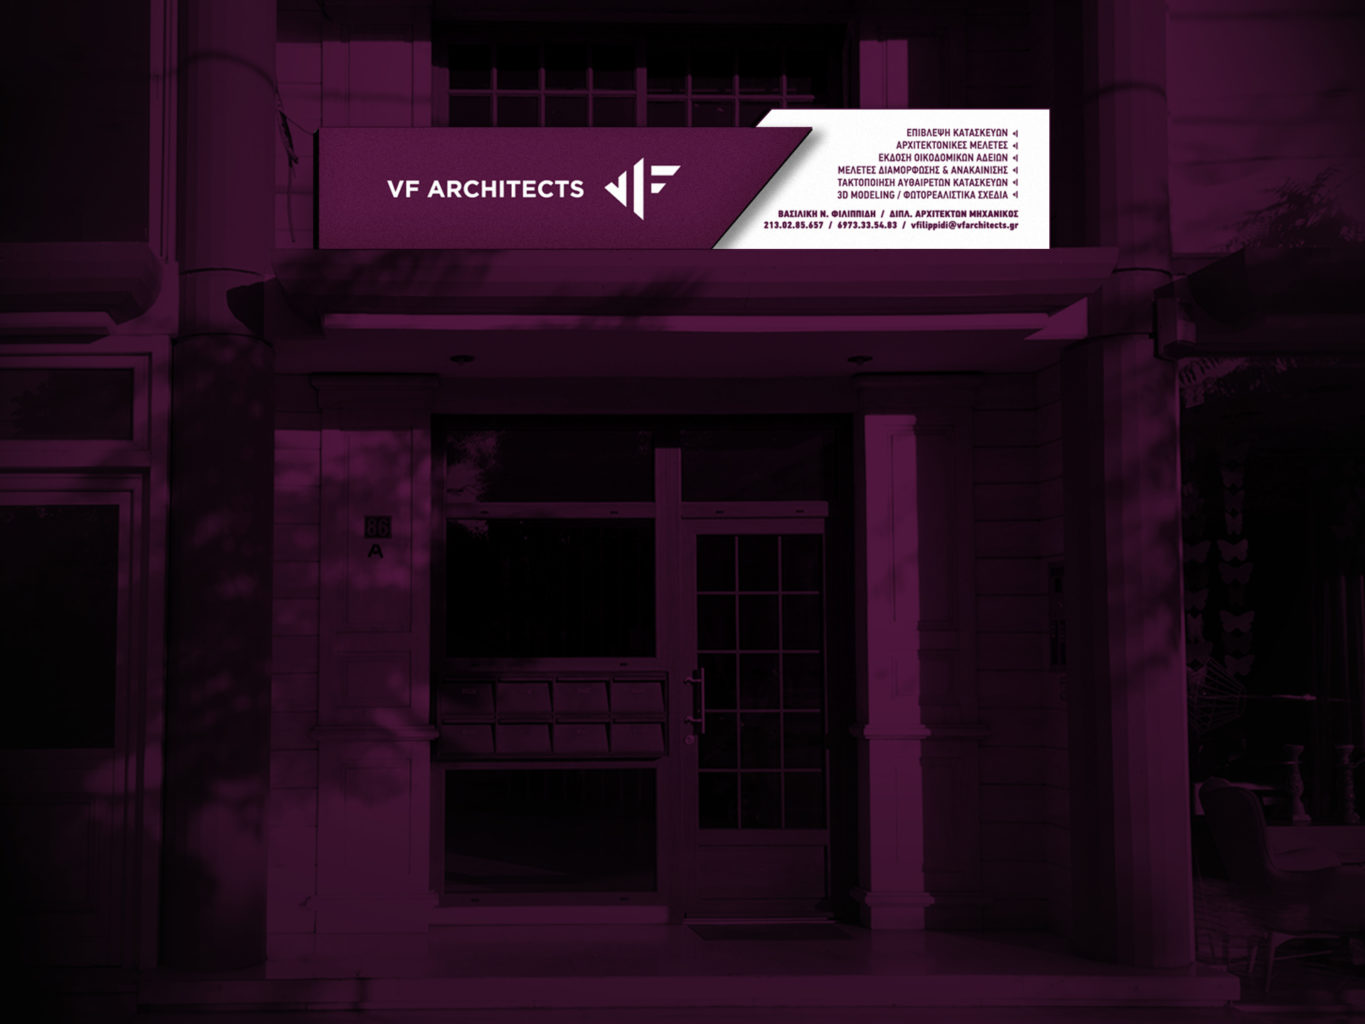 VF Architects